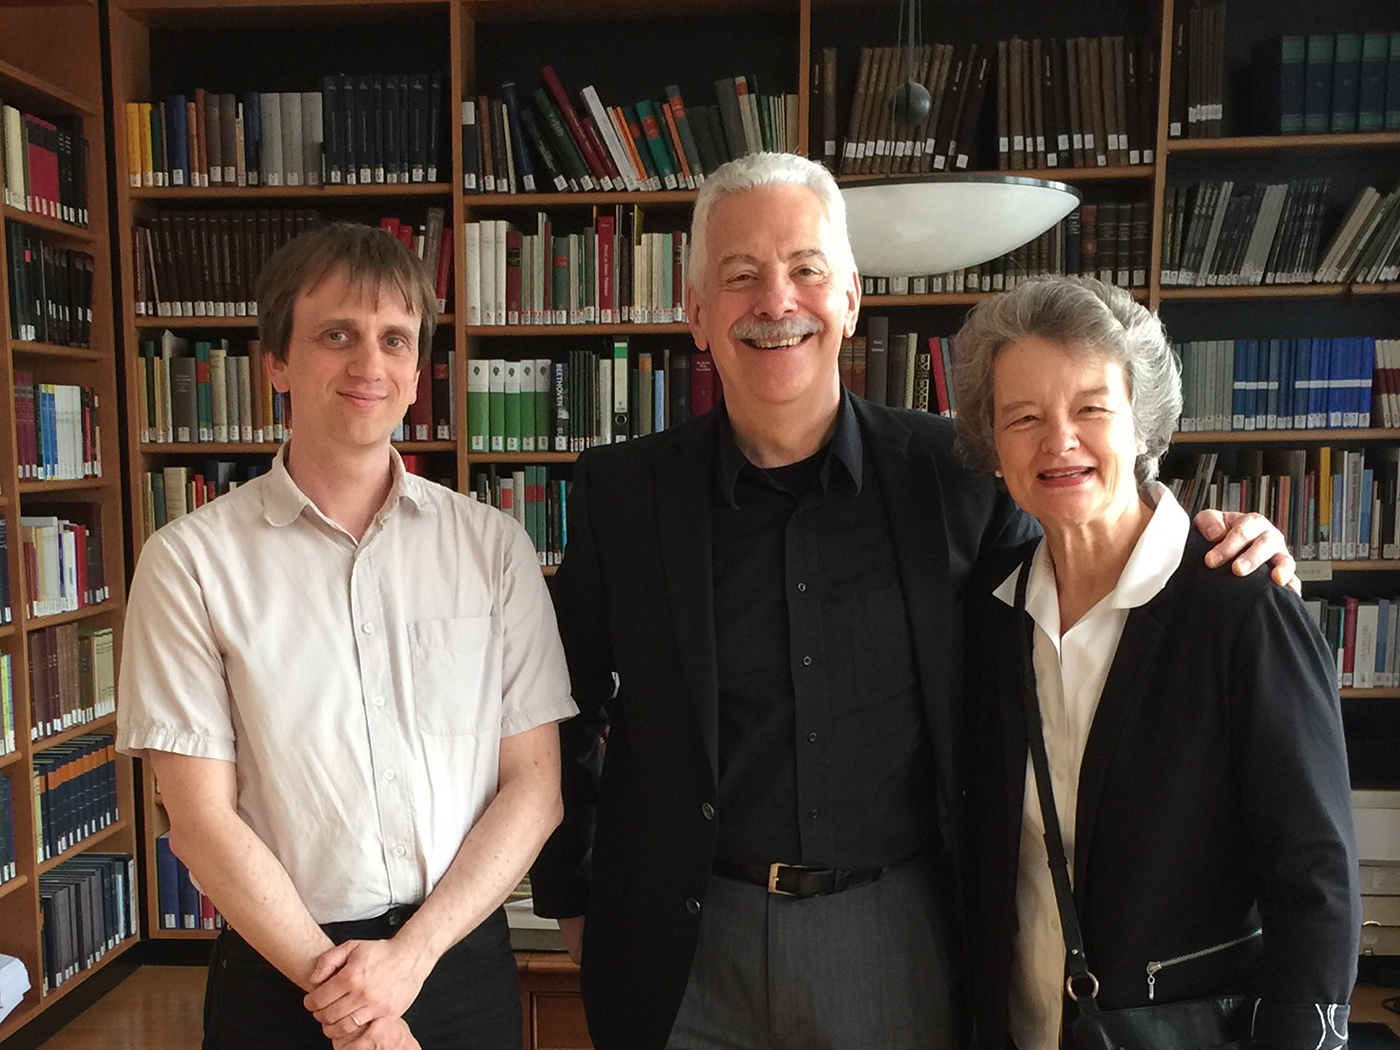 Fischer Duo with Jens Drufner, 2015    with Jens Drufner, chief editor of the Beethoven Sonatas for Henle Edition at the Beethoven Archiv at Beethovenhaus Bonn